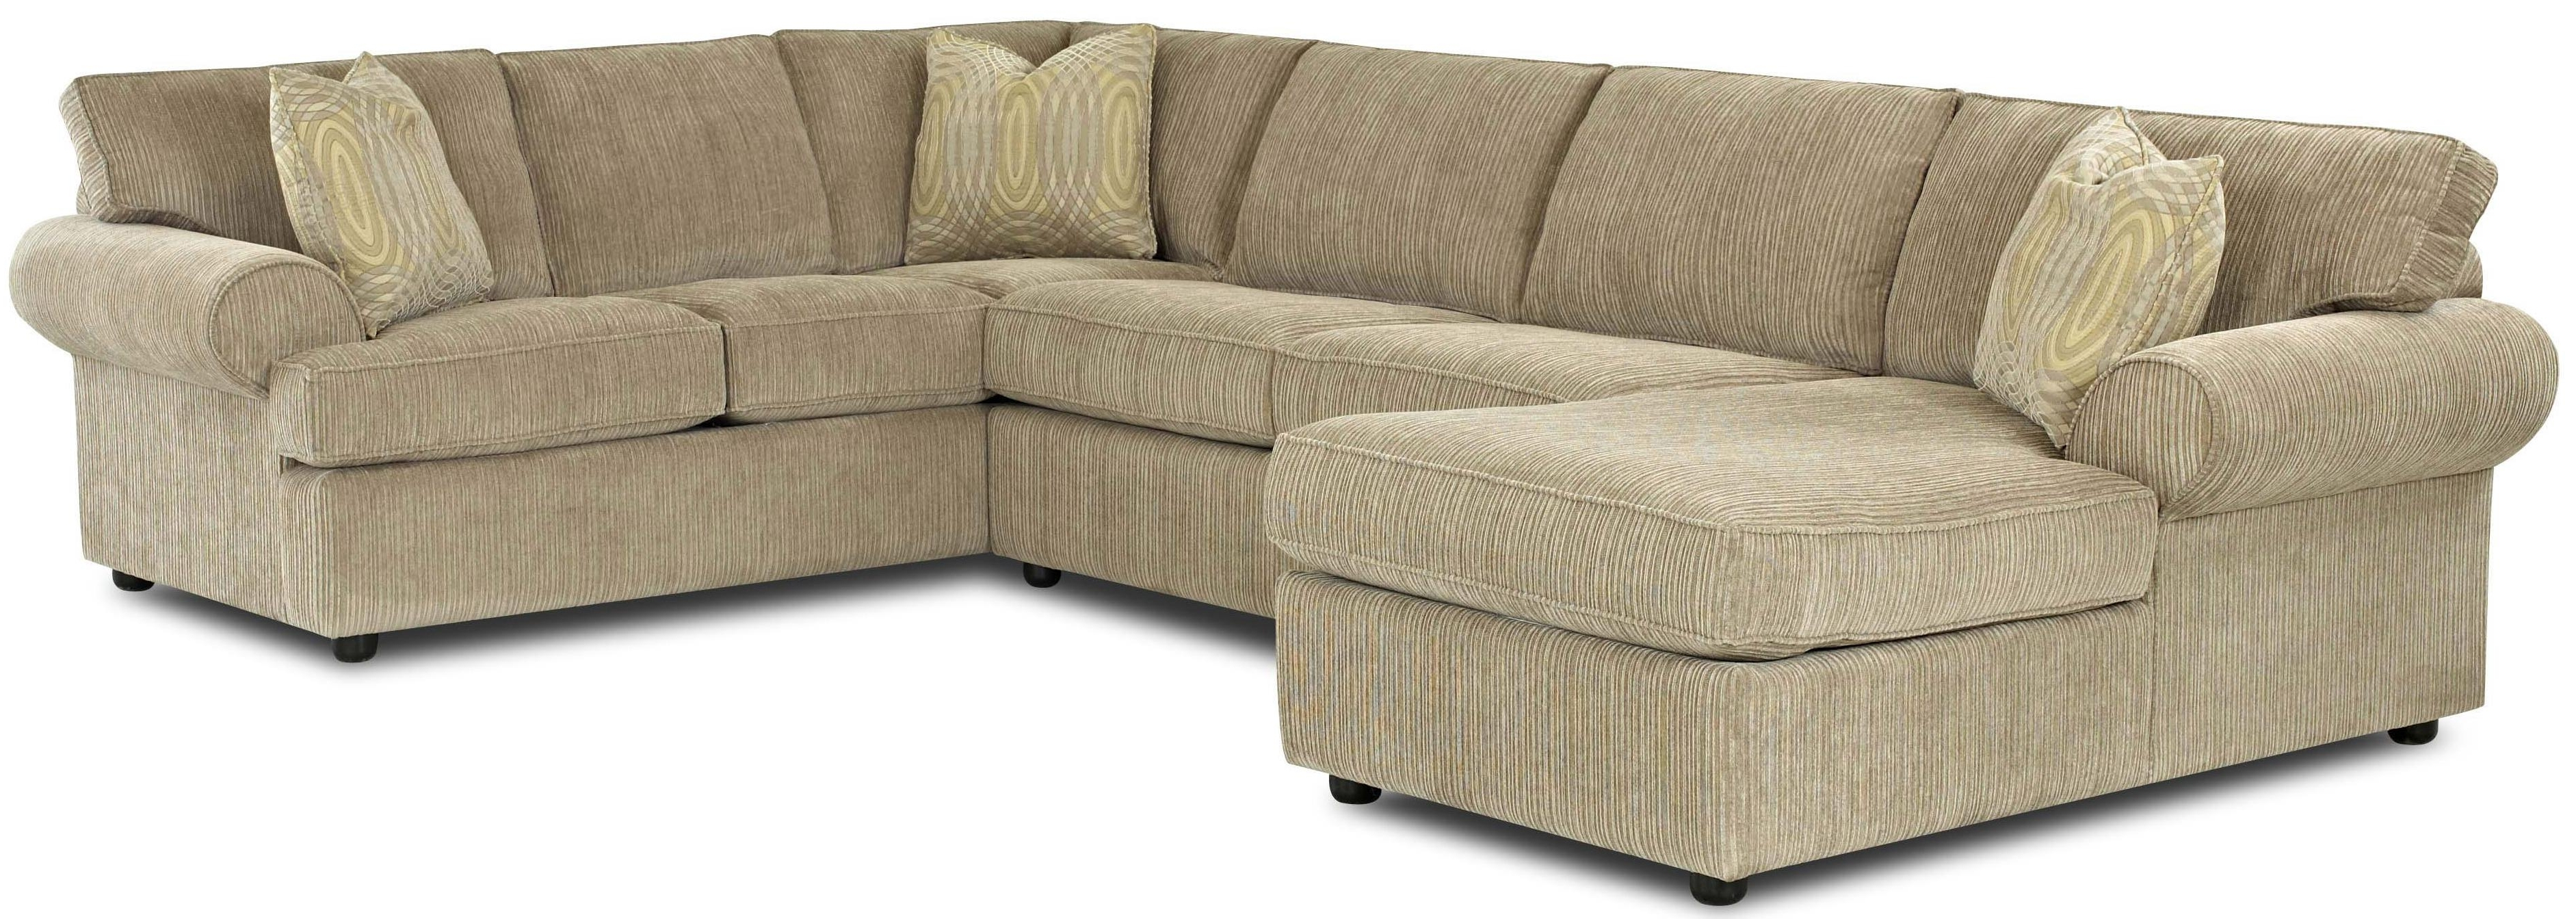 Popular Sectional Sofas With High Backs For Brown Velvet Sectional Sofa With High Back And Grey Cushions Plus (View 14 of 20)